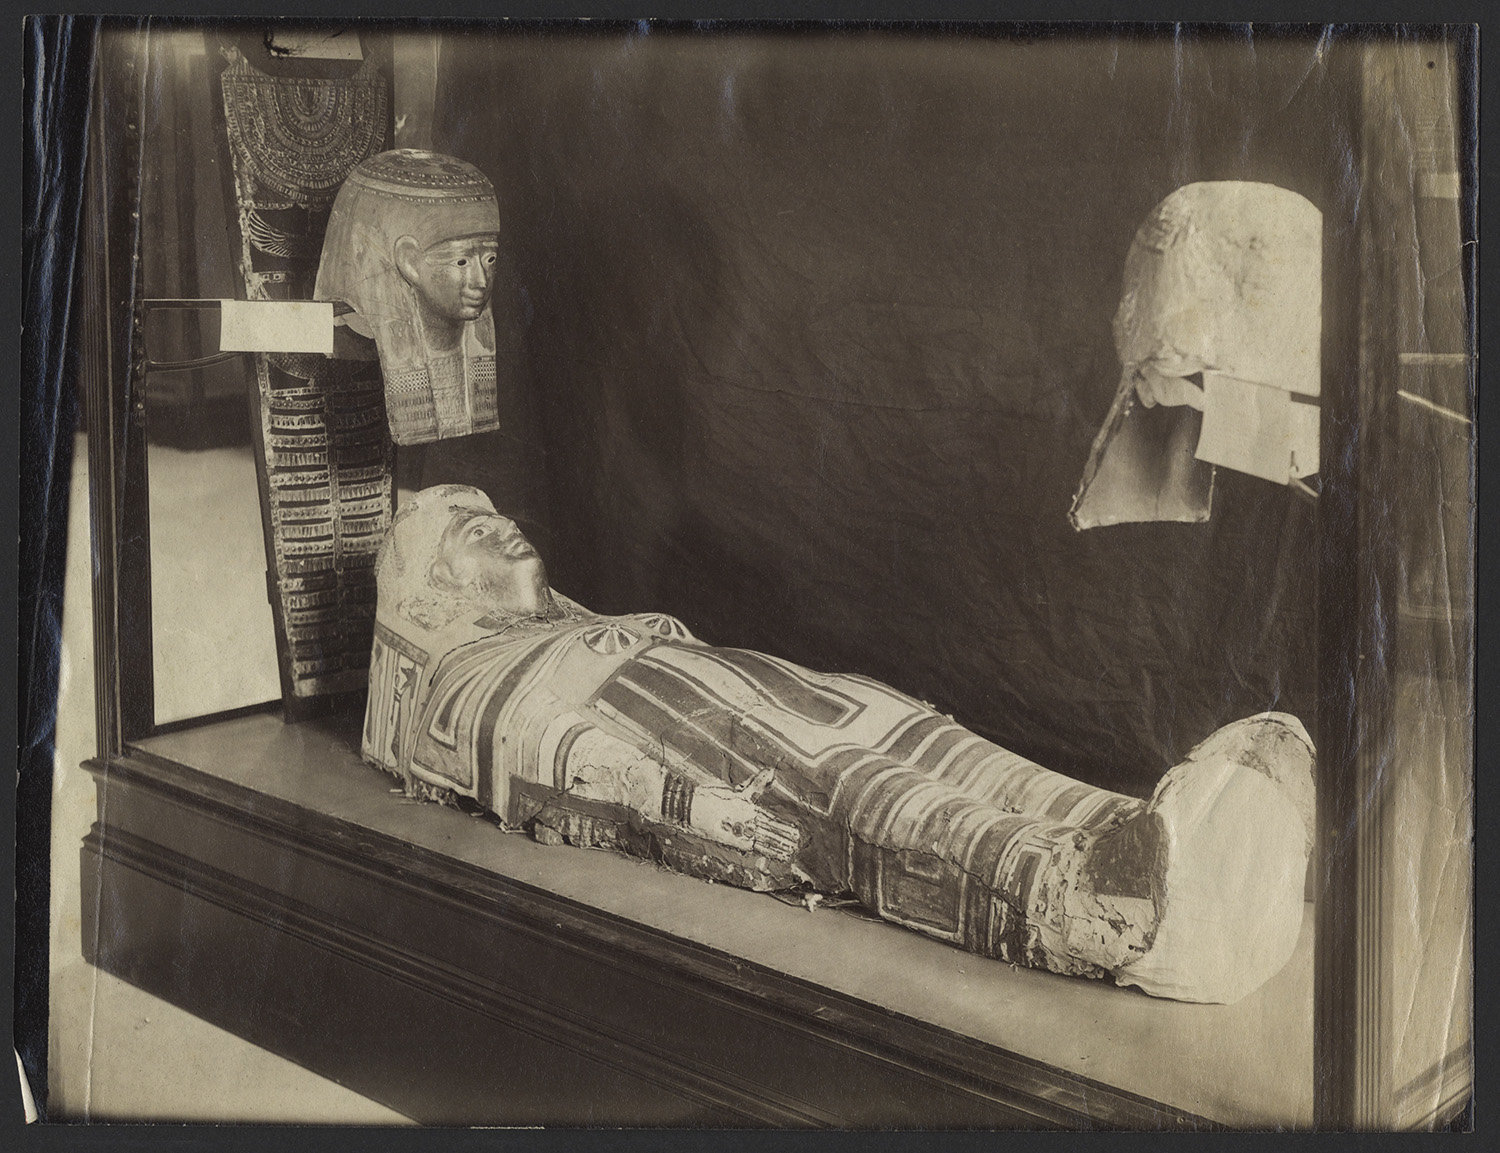 This historical photo shows the ancient Egyptian mummy case on display at the Stanford museum before the 1906 earthquake broke it into pieces. Credit: Department of Special Collections and University Archives, Stanford University Libraries